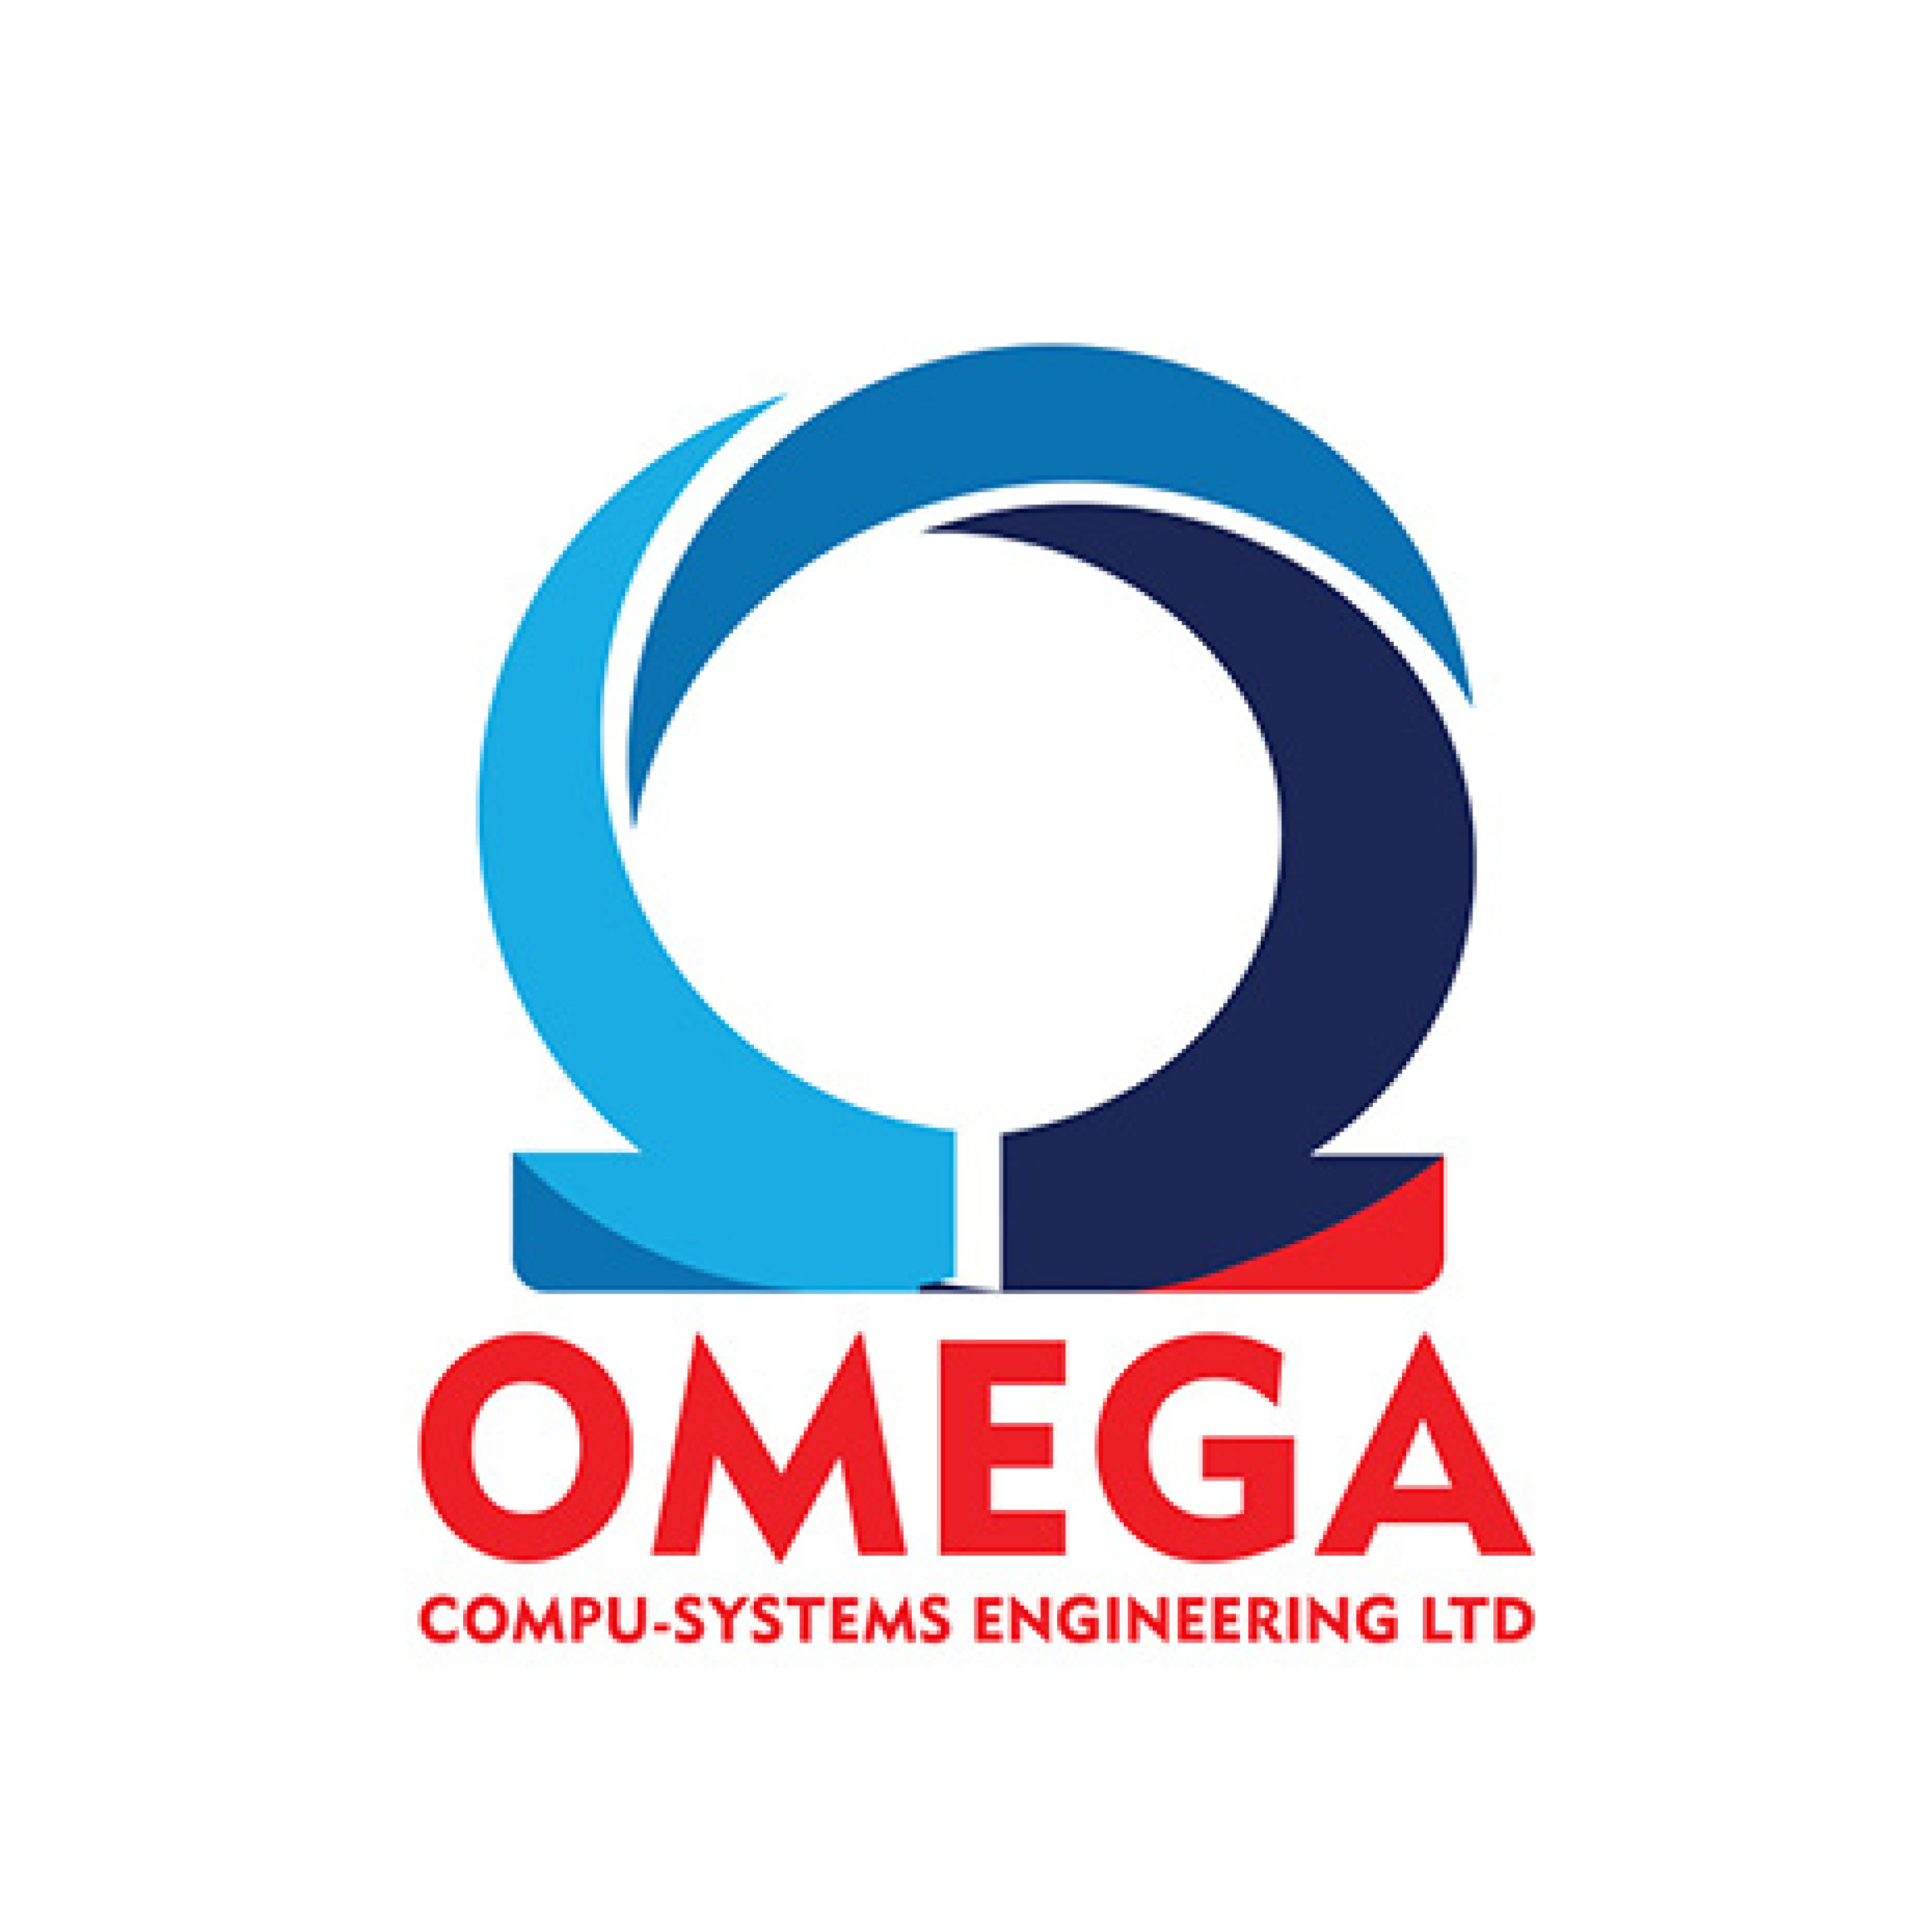 Omega Compu System Engineering Ltd